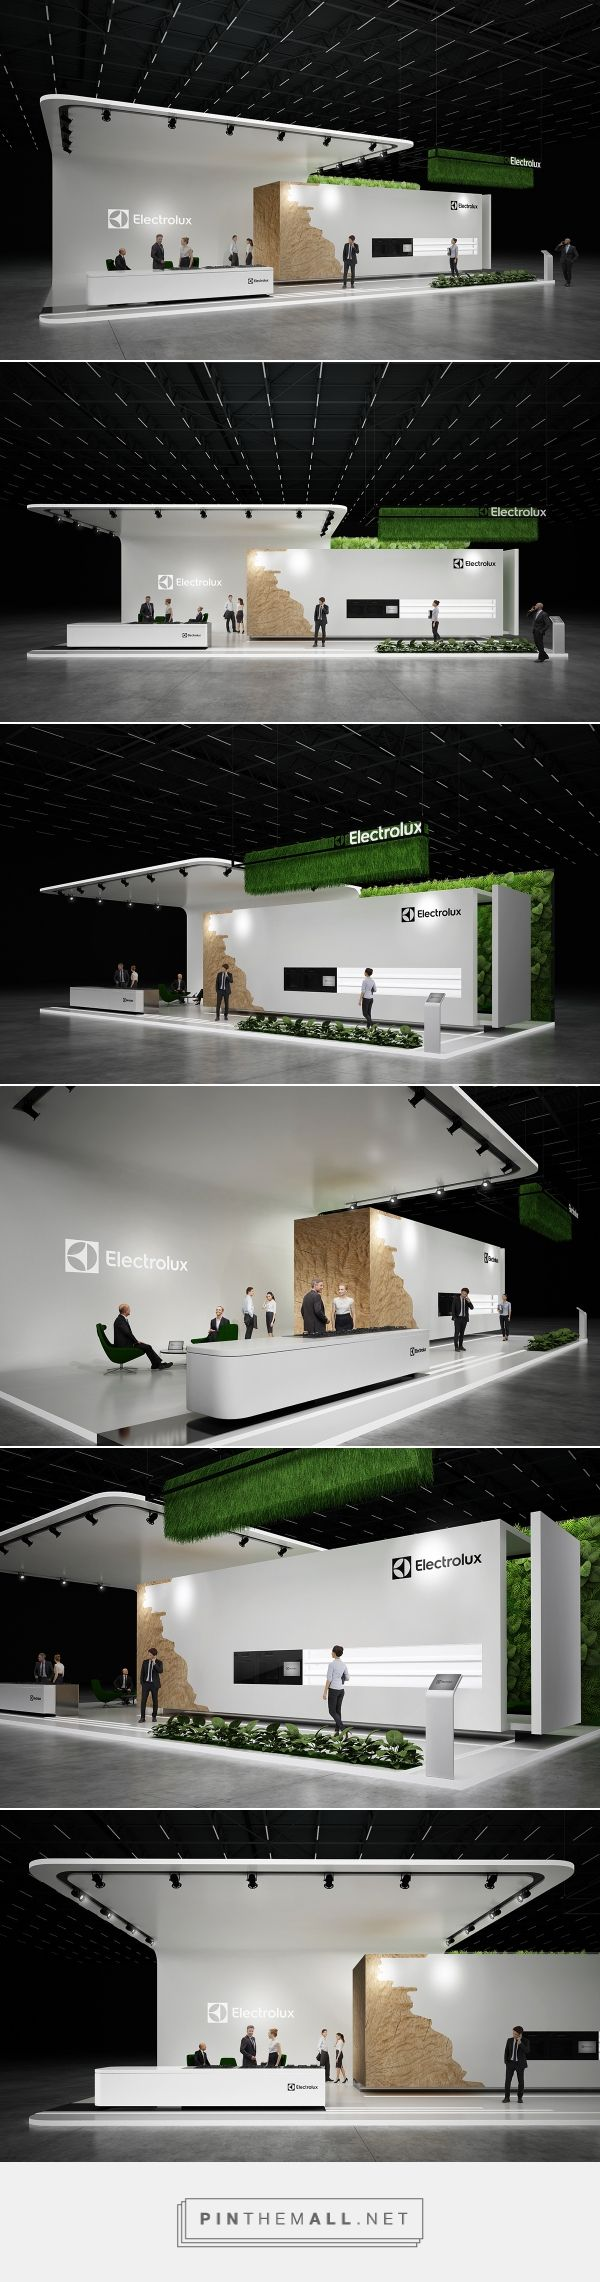 * Electrolux * exhibition stand * on Behance - created on 2016-10-20 12:31:17